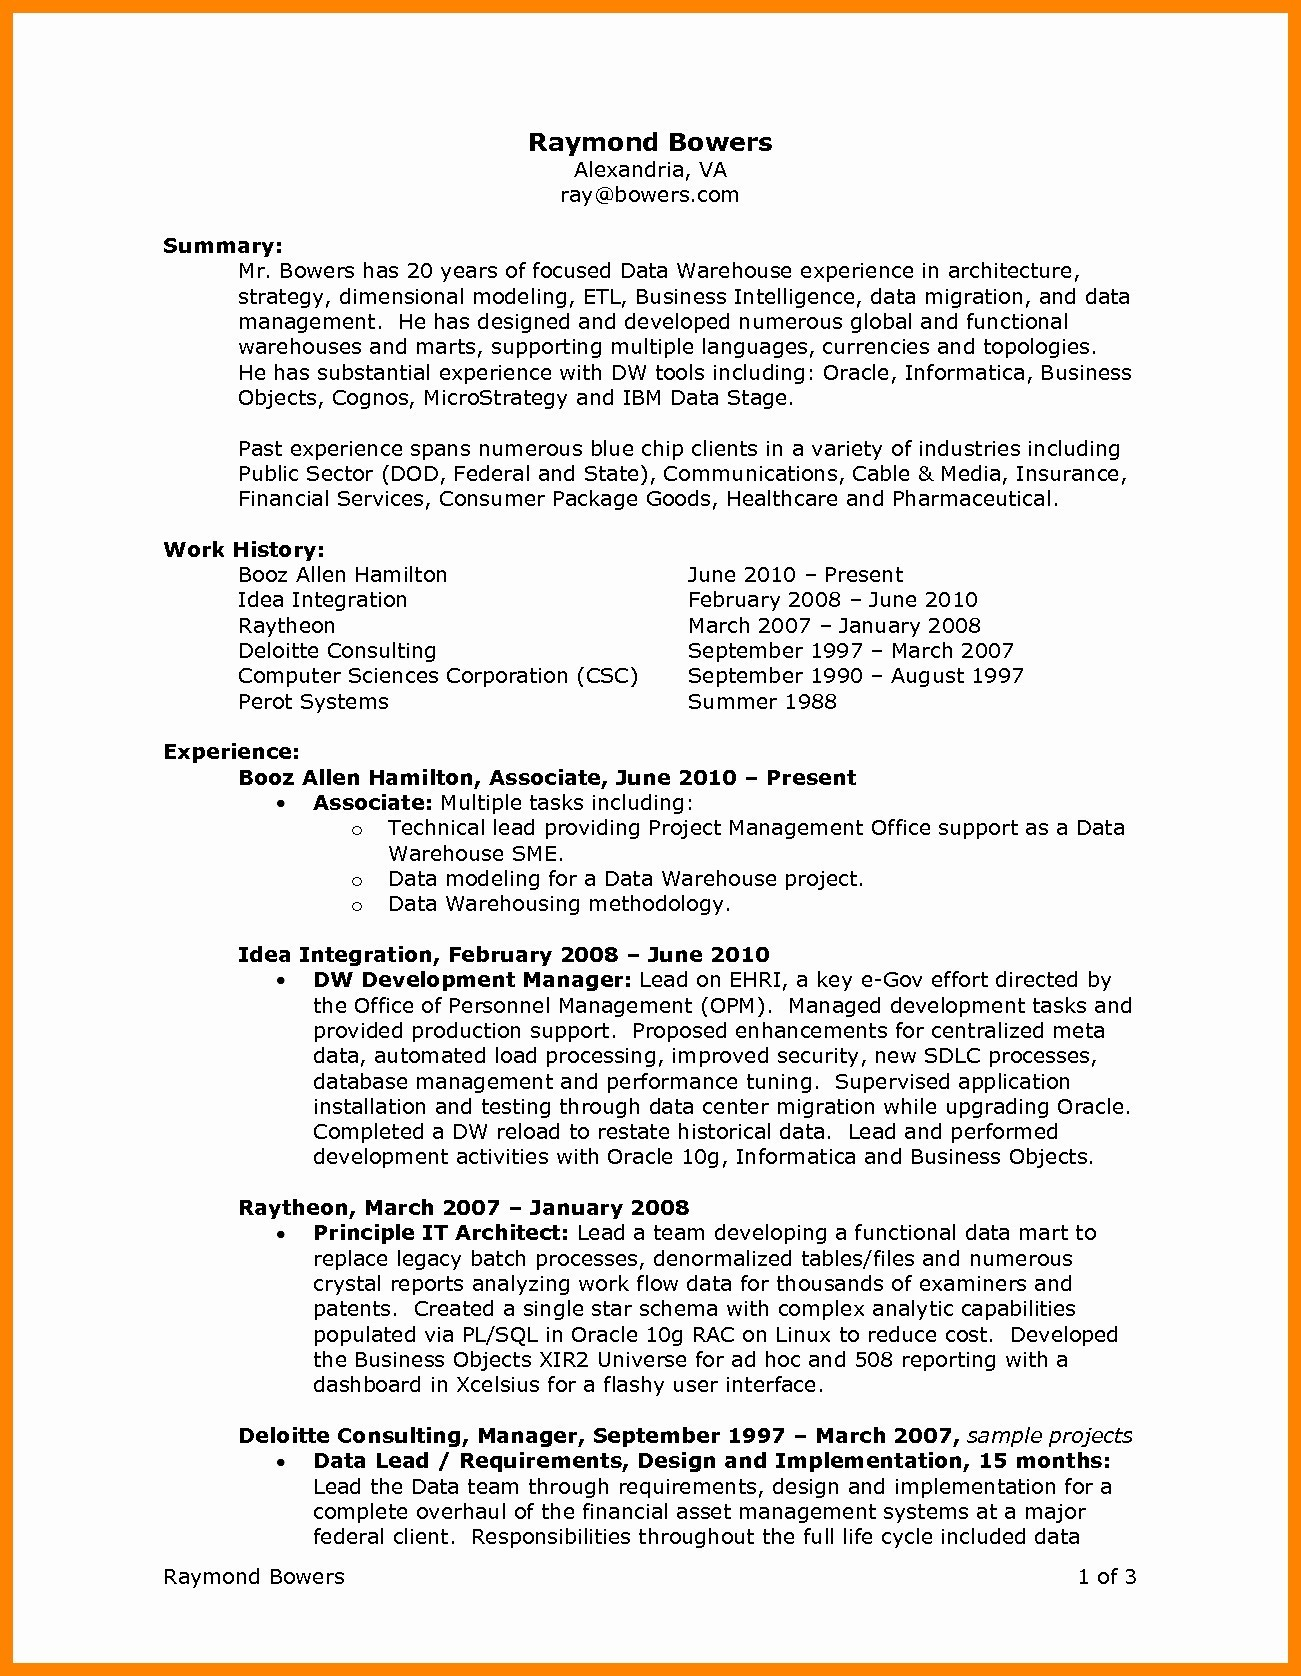 Resume for Internal Promotion - Resume for Internal Promotion